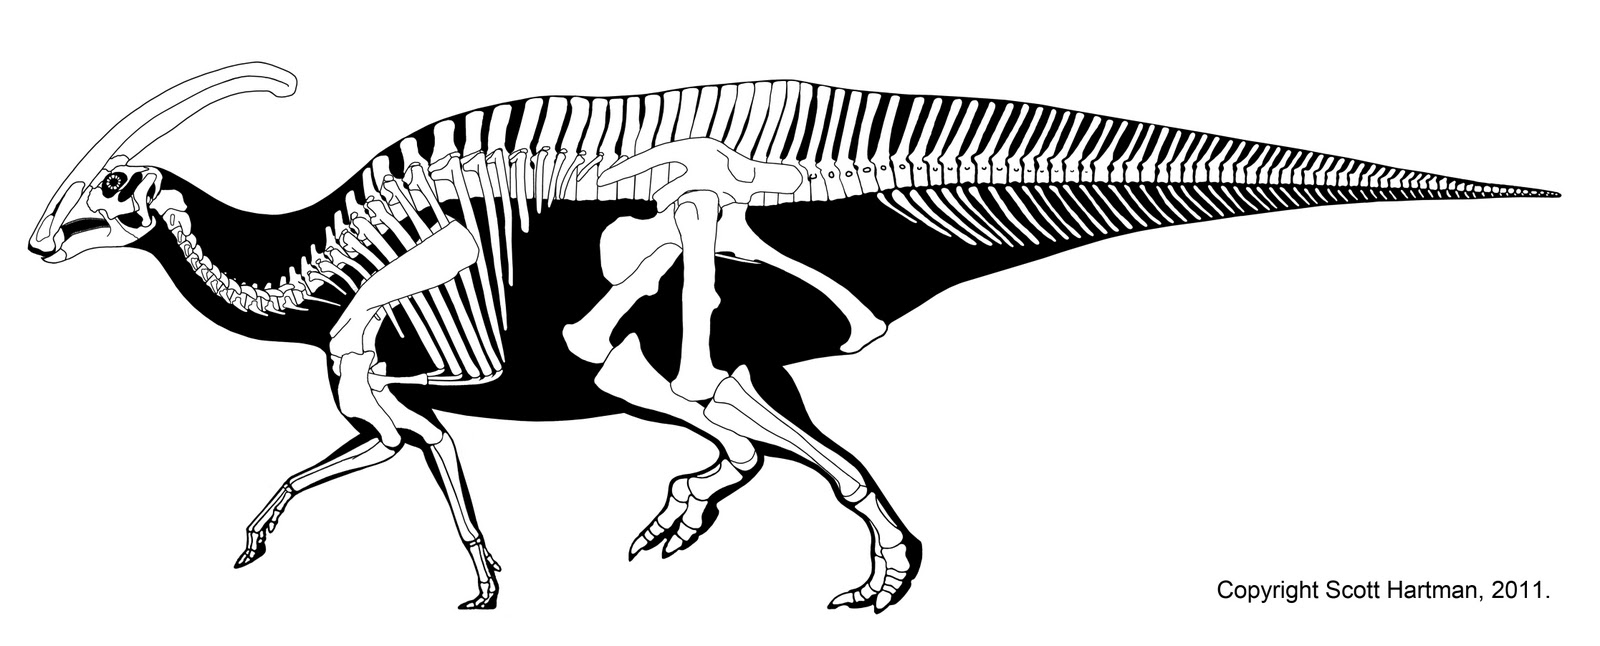 A History Of Skeletal Drawings Part 3 Dino Renaissance To The